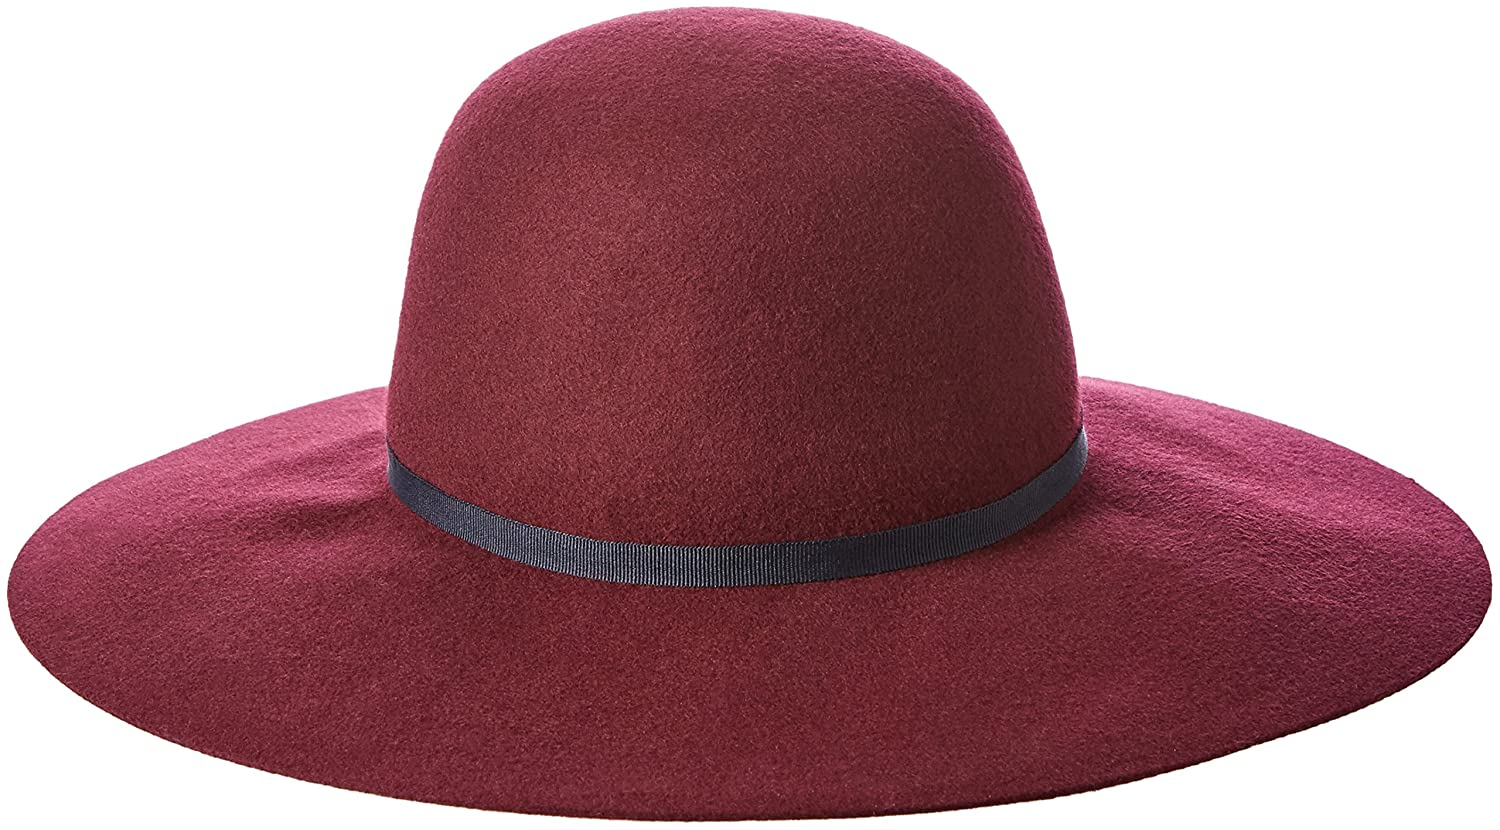 Ted Baker London Women s Cooney Floppy Felt Hat db88c618be6